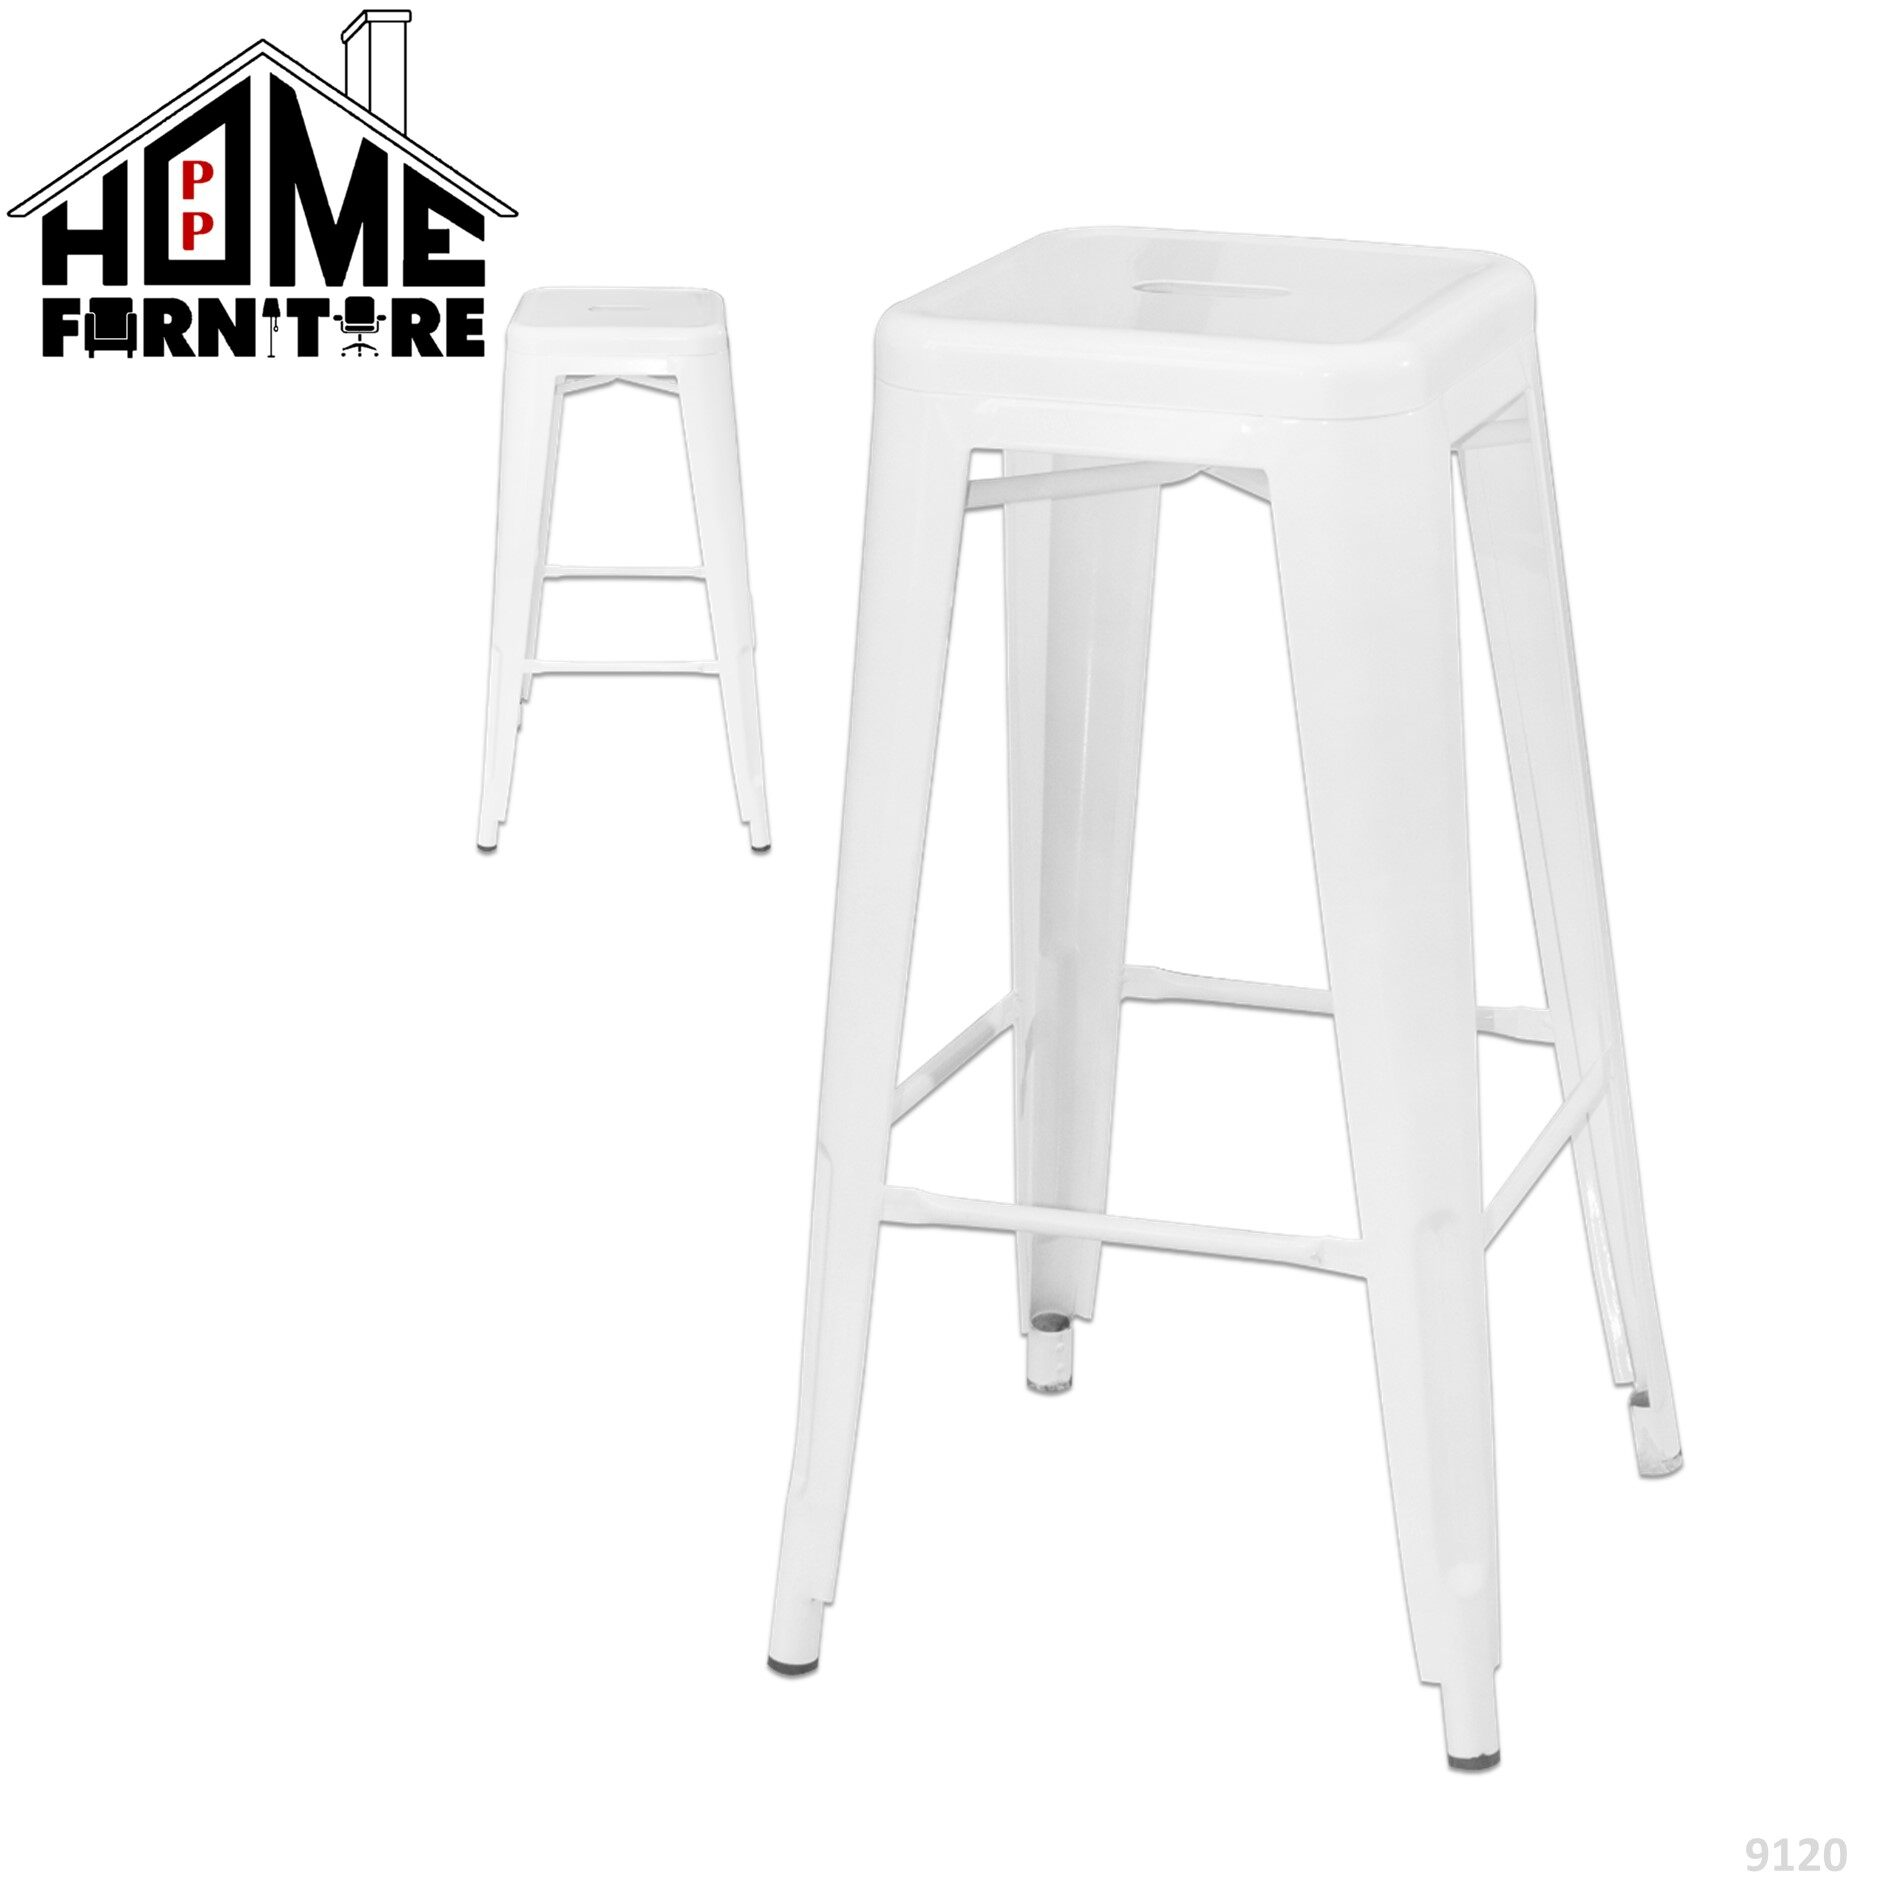 PP HOME Metal Bar stools/ Pub chair/ High bar chair/High chair stool/ Dining chair only/ Najis bar/  Kerusi bar tinggi bangku 铁酒吧椅子/ 长脚椅/ 高脚椅/餐桌椅9120